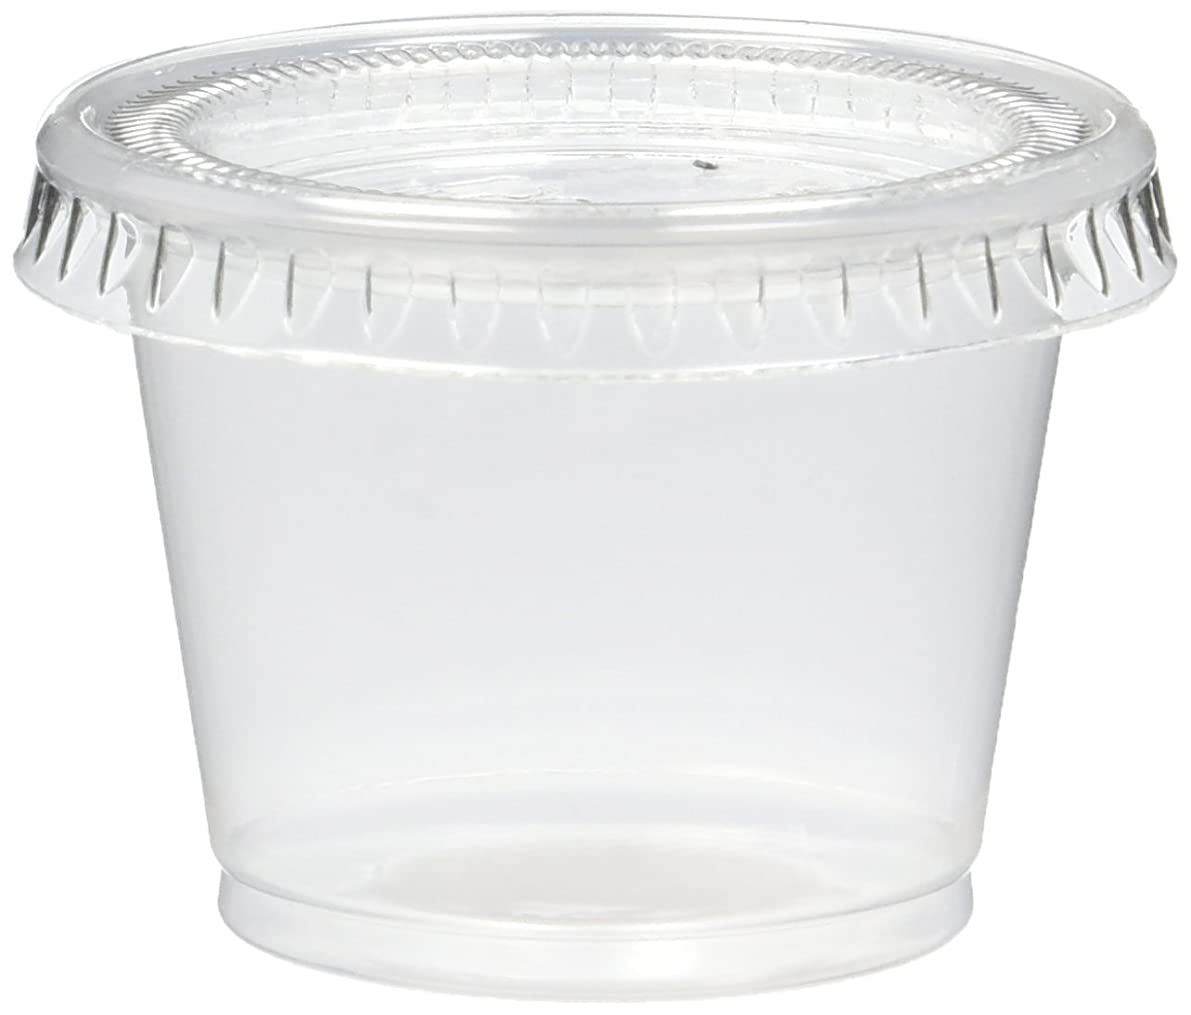 125 Count Jello Shot Souffle Cups and Lids, 1-Ounce, Translucent